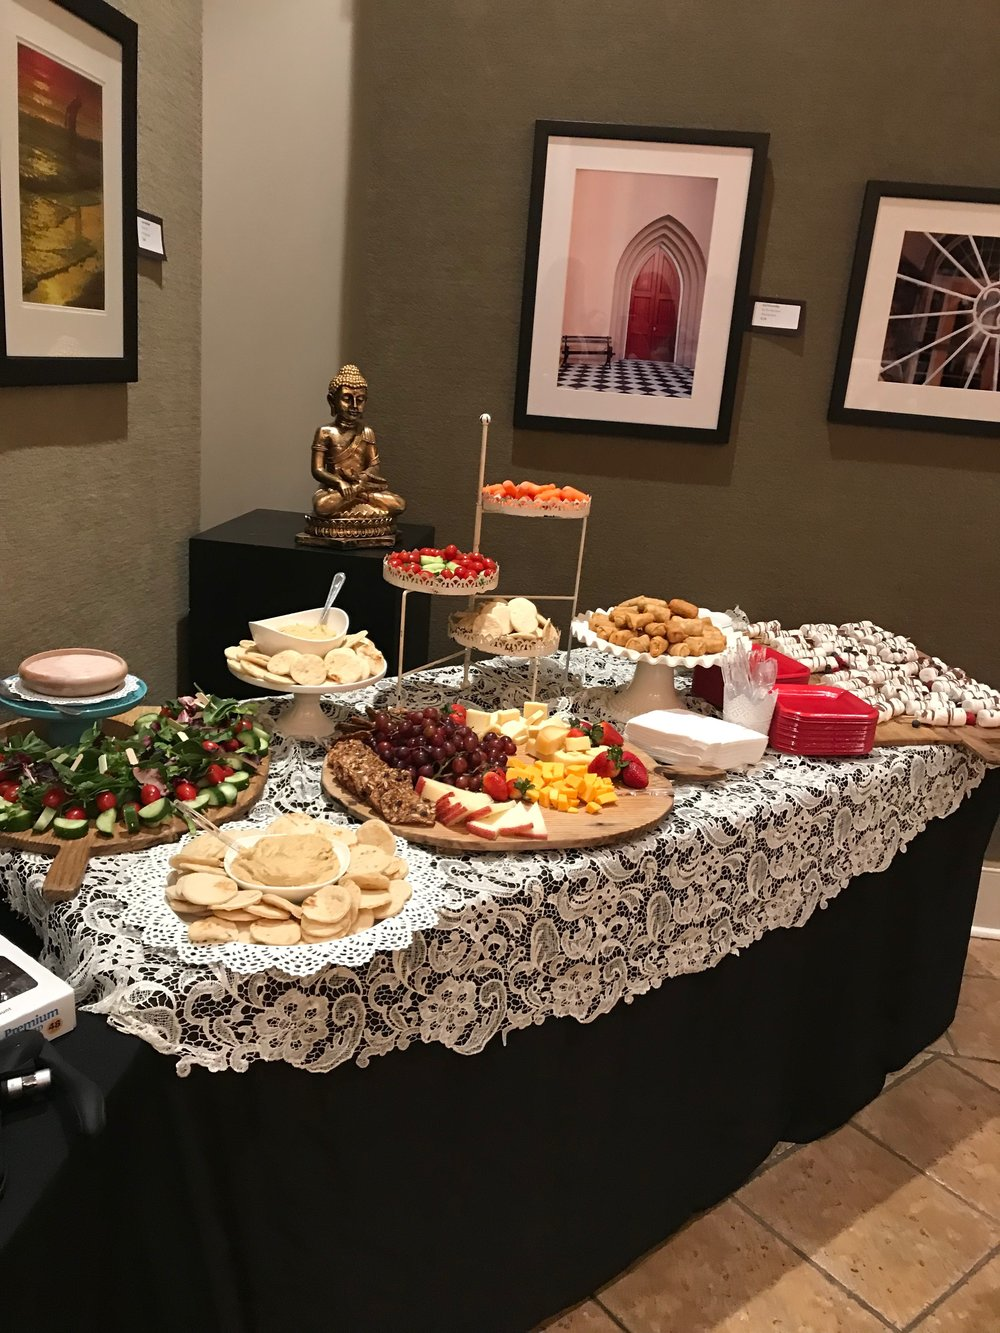 Catering - Having an event somewhere else and need yummy catering? We got you. Just drop us a line to let us know what you have in mind and we'll take care of the rest.